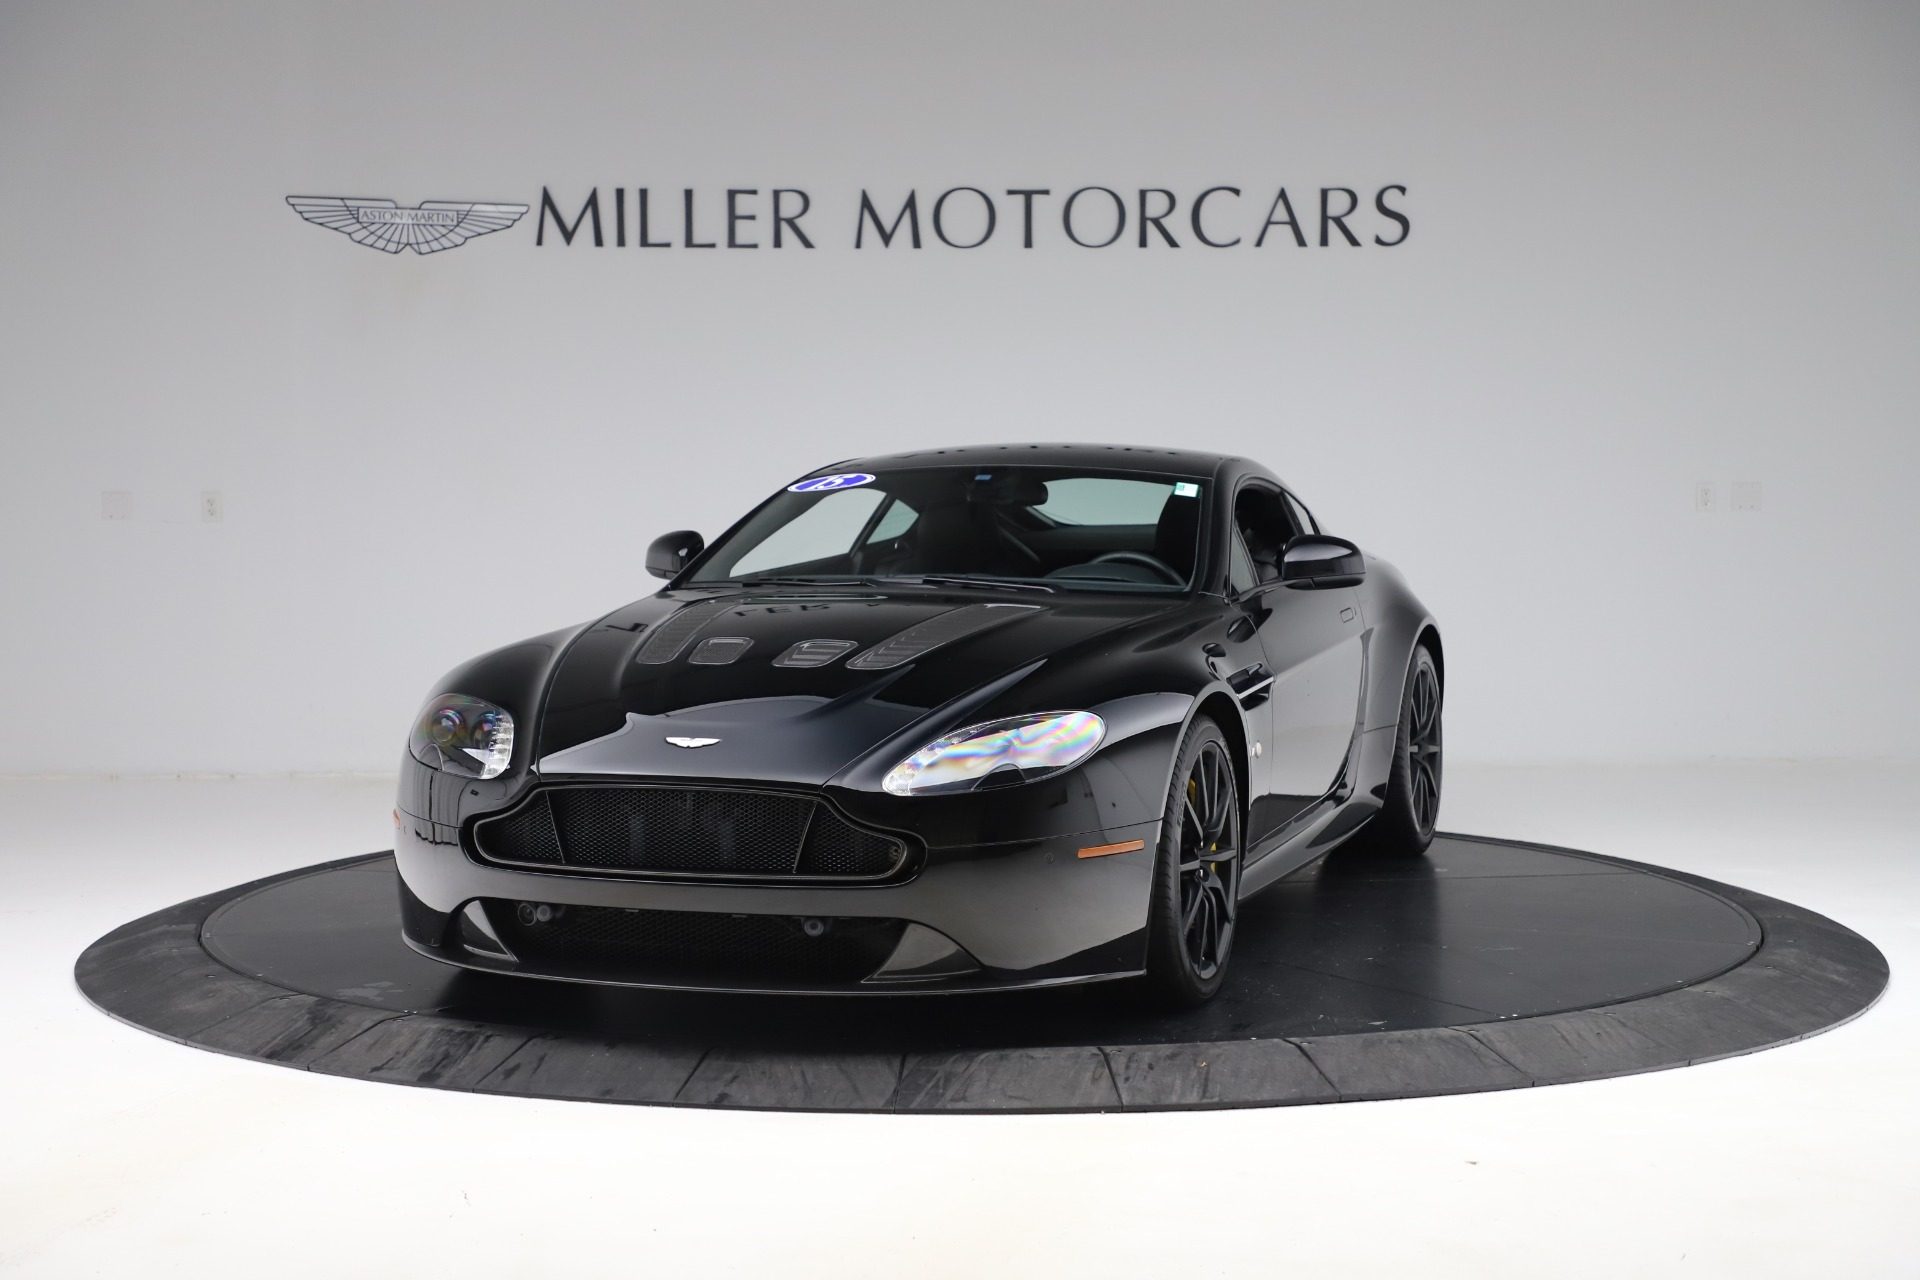 Used 2015 Aston Martin V12 Vantage S Coupe For Sale 104900 In Greenwich, CT